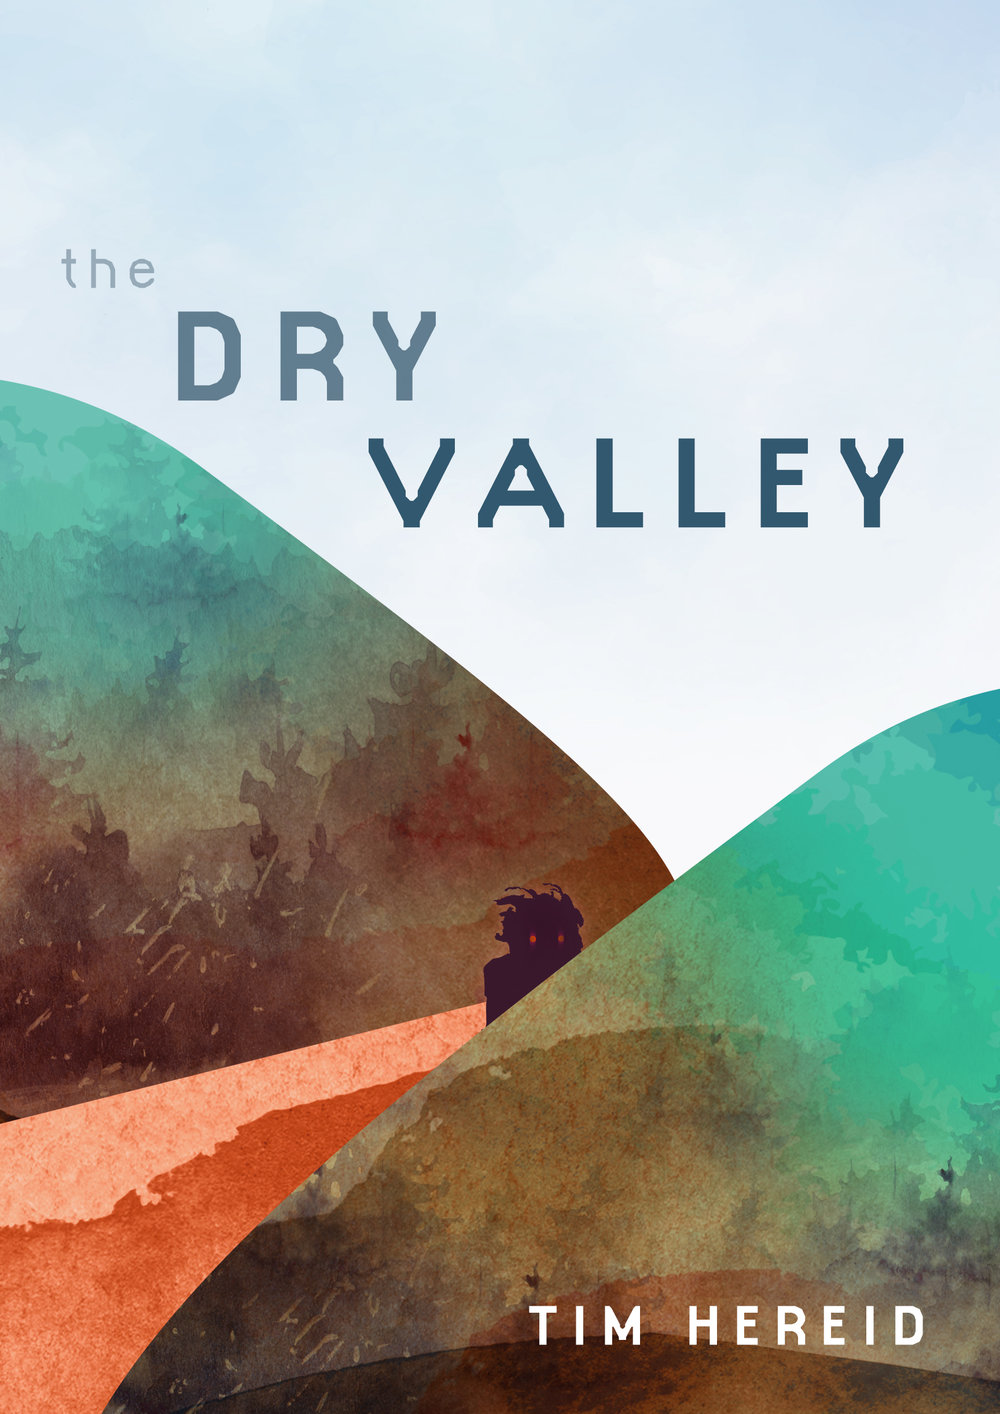 The Dry Valley - ON TUESDAY, CALLIOPE RUBY BAKER saw the monster for the first time. It stood across the road looking at her. Shaking, she hid behind the curtain by the TV and watched it back. Finally, the monster sunk back into the weeds at the edge of the road, its patchy head vanishing among the chicory. Cali blinked and wondered whether she had seen it at all.Calliope's life is that of any other rural middle schooler except that her grandpa isn't the man he used to be. A year ago, he went quiet. Now Calliope and her grandma live in a house dark and heavy with silence. Then one day a monster appears bearing a truth so startling it will change everything Cali thinks she knows about her grandpa, her family and even herself.Available April 8th.